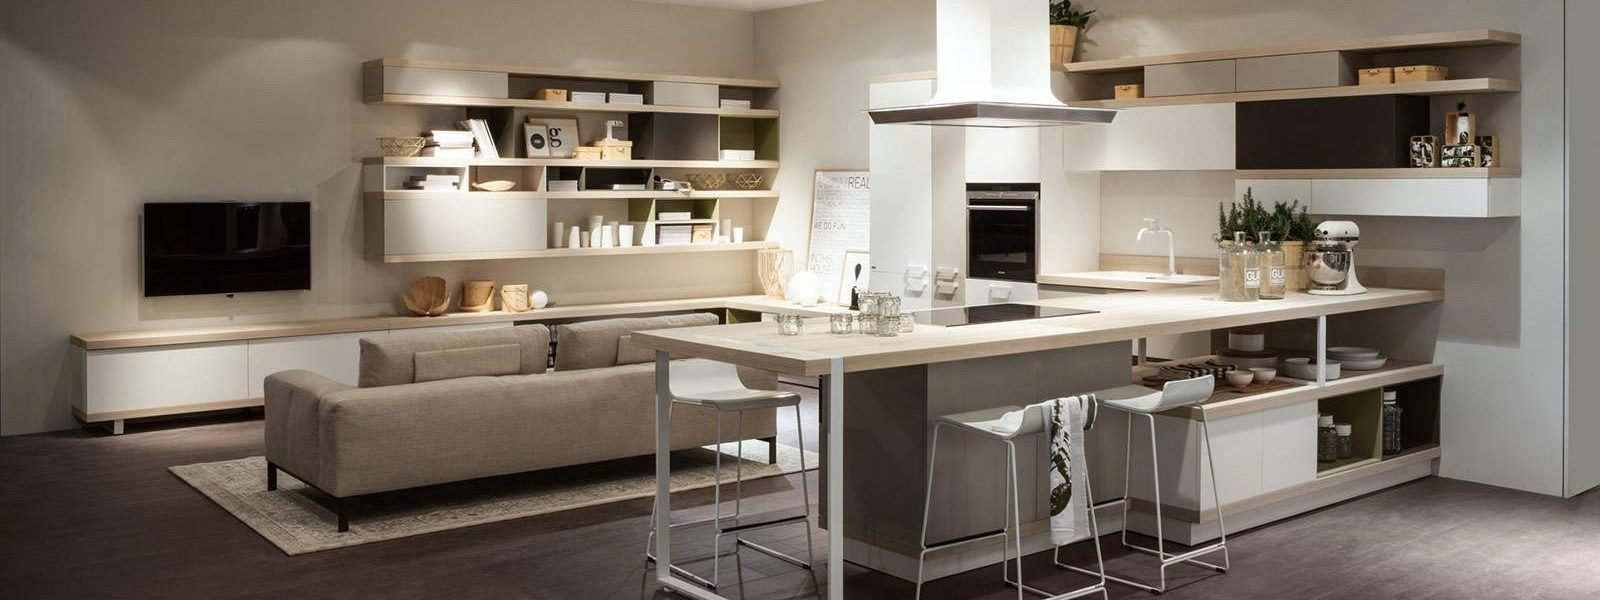 Foodshelf di ora to giulio rossi group - Zona living con cucina ...